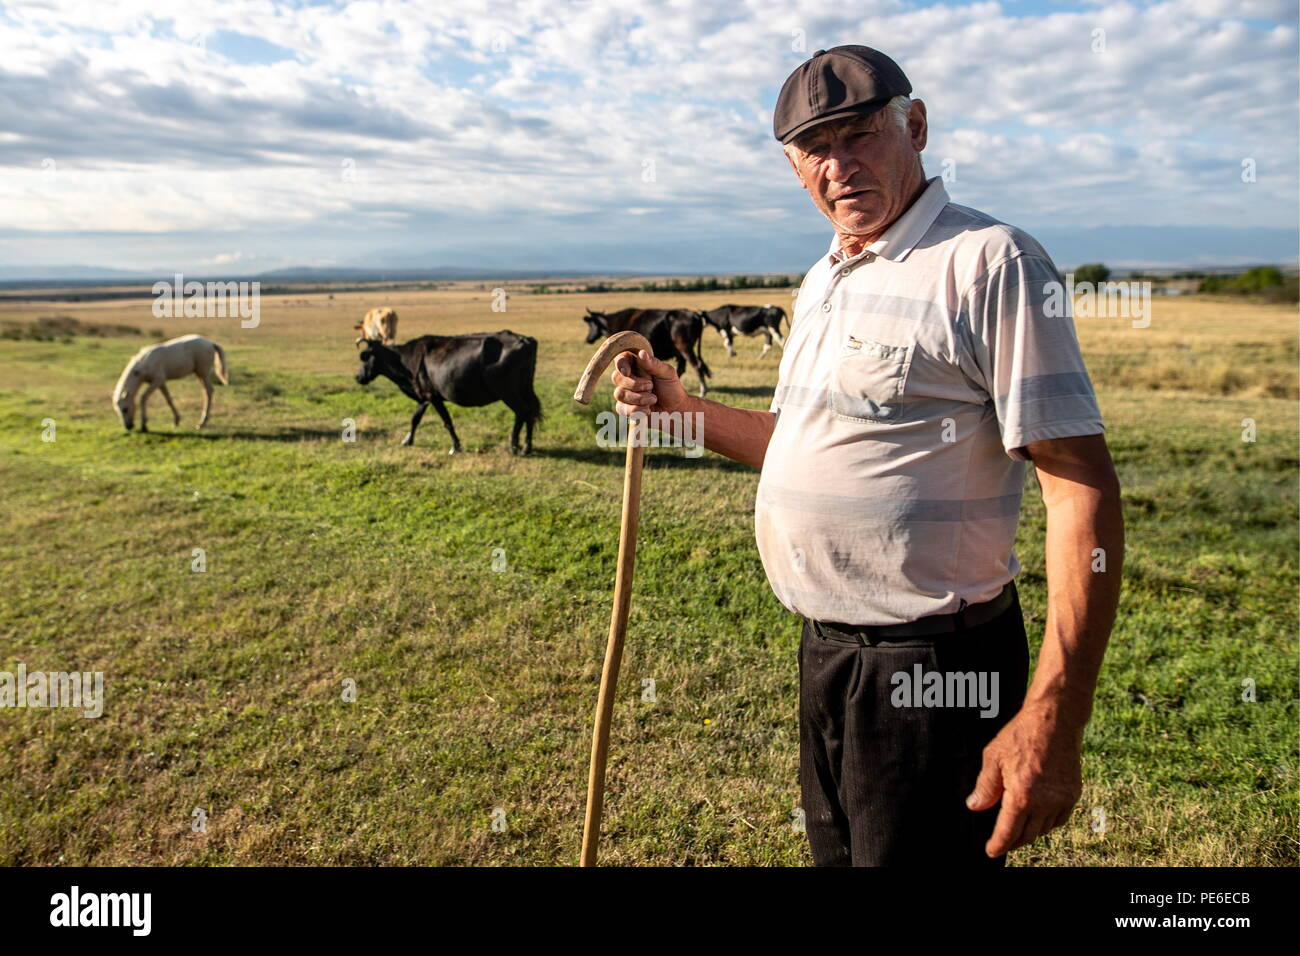 South Ossetia. 11th Aug, 2018. SOUTH OSSETIA - AUGUST 11, 2018: Alikhan Madzigov grazes cows in the village of Khetagurovo, Tskhinvali District, South Ossetia; Alikhan and his wife Margarita, 63, have been running a farm since their house was restored after the 2008 South Ossetian-Georgian military conflict. Sergei Bobylev/TASS Credit: ITAR-TASS News Agency/Alamy Live News - Stock Image